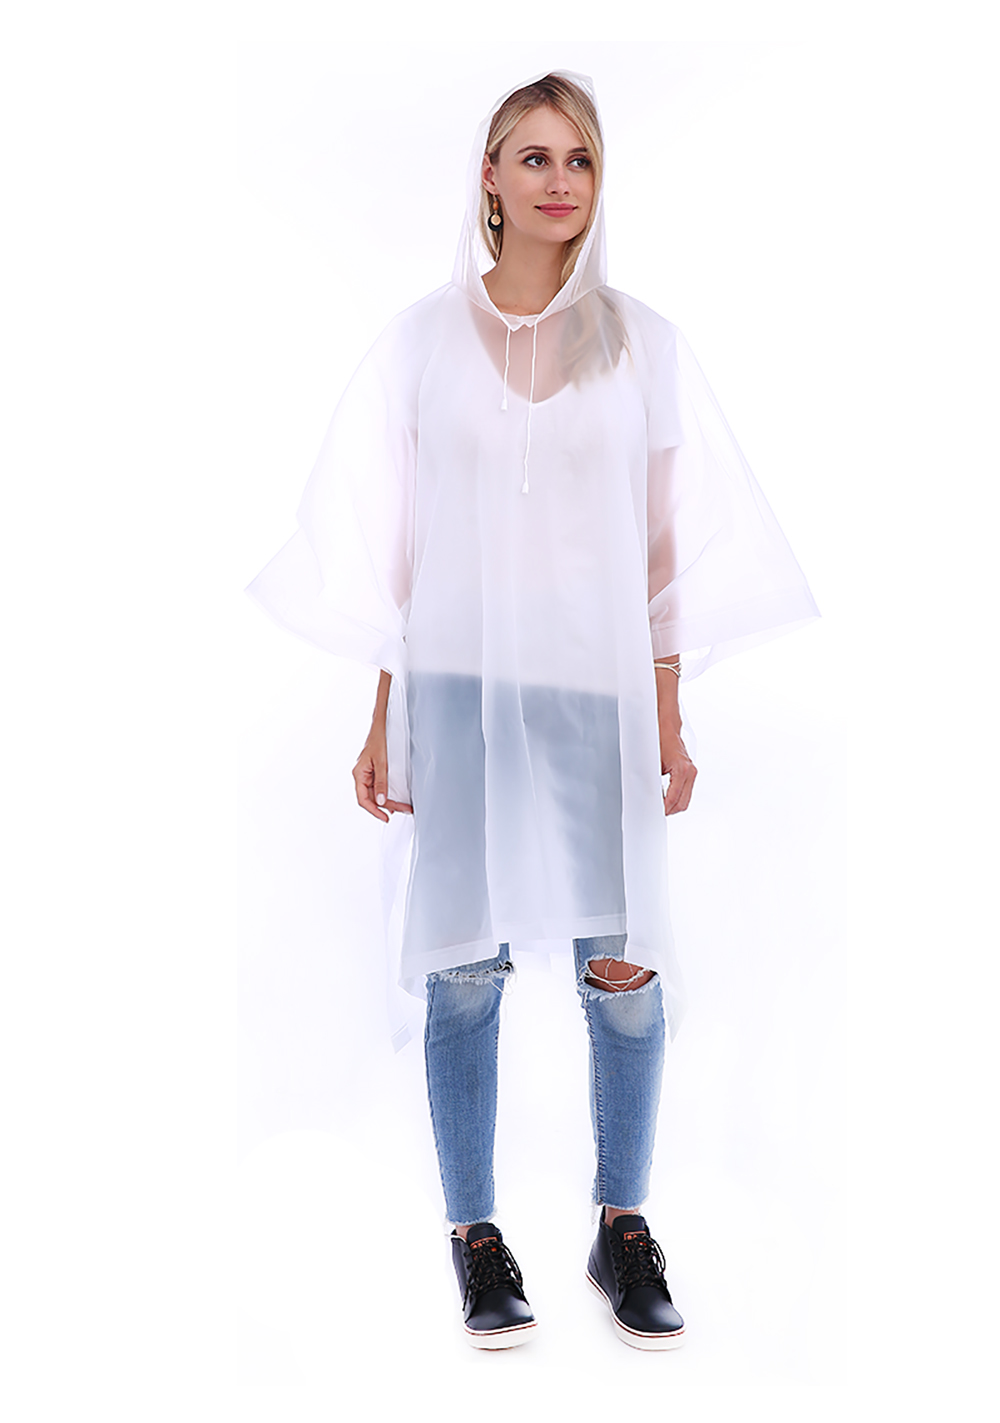 EVA Waterproof Rain Poncho Raincoat with Hoods for Outdoor Camping Theme Park- Transparent